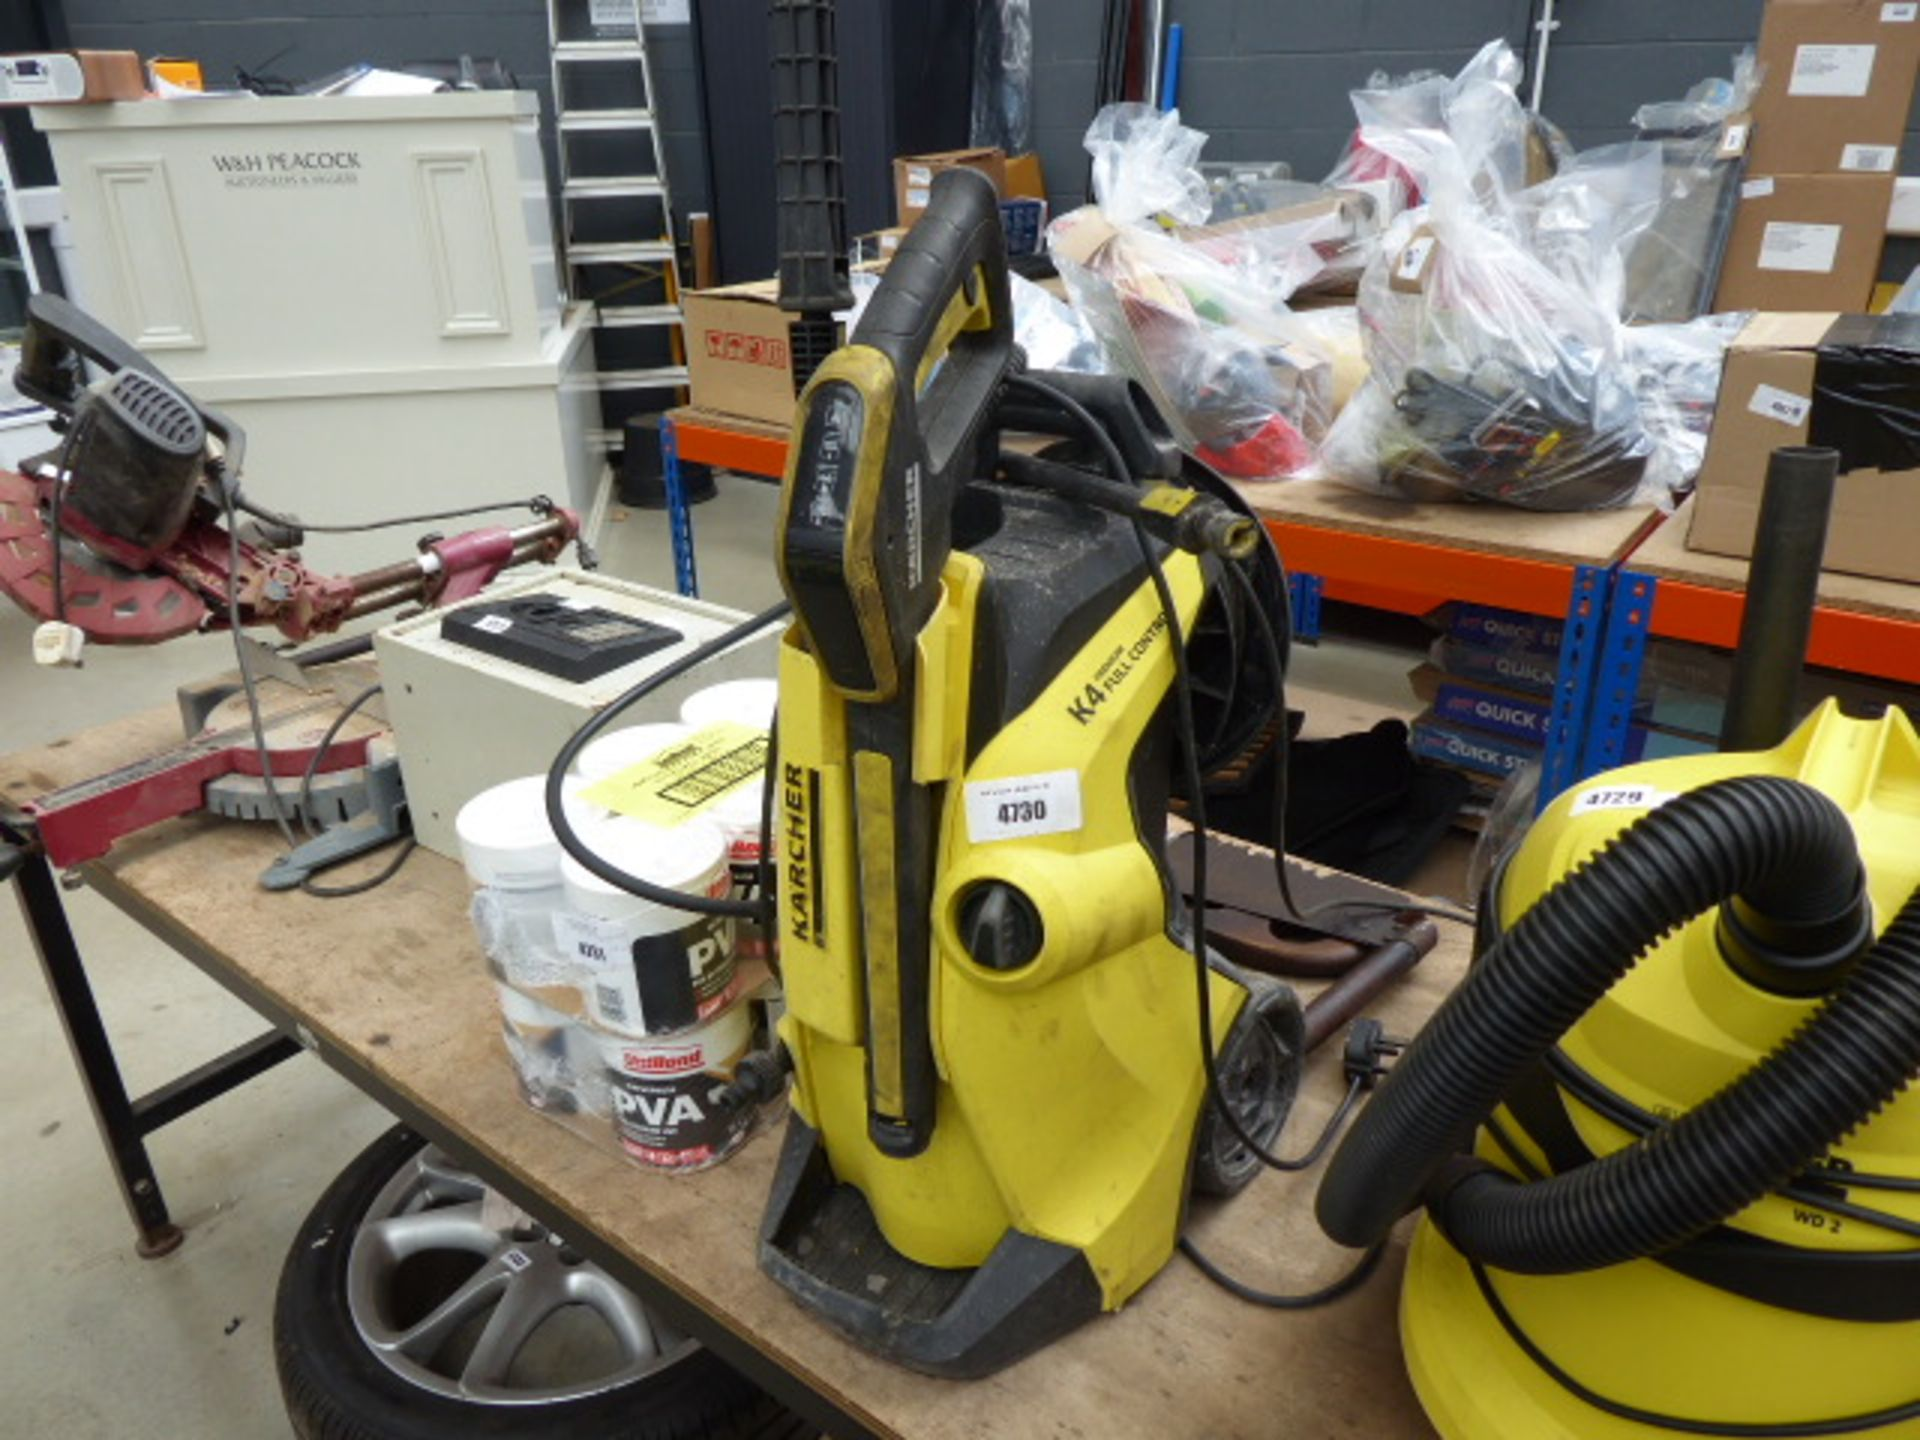 Lot 4730 - 4482 - Karcher K4 Premium full control electric pressure washer